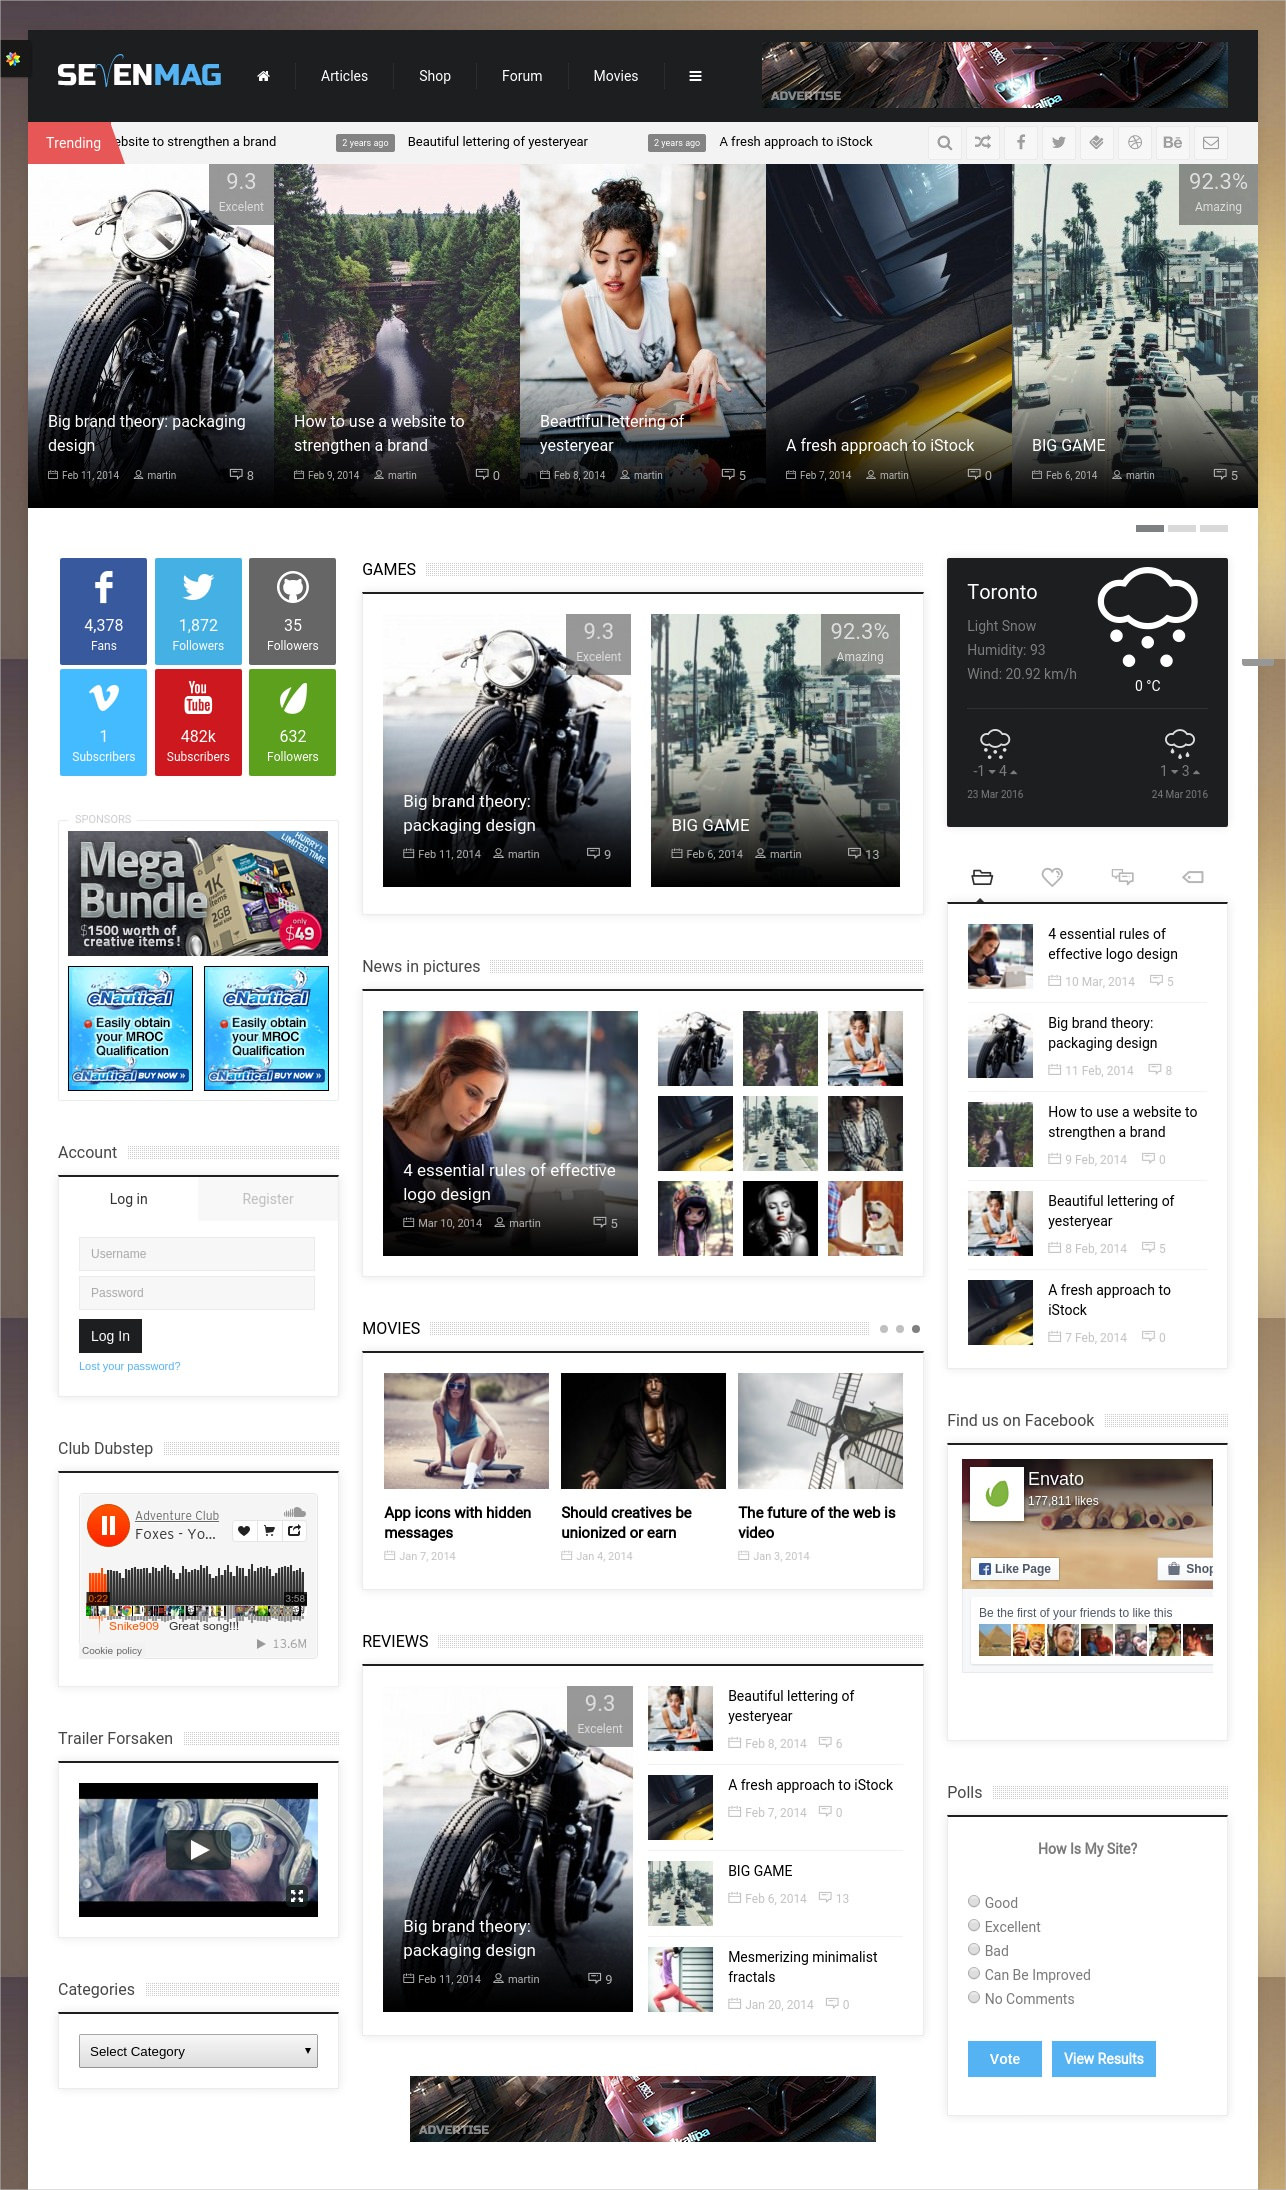 blog magzine games news wp theme 59